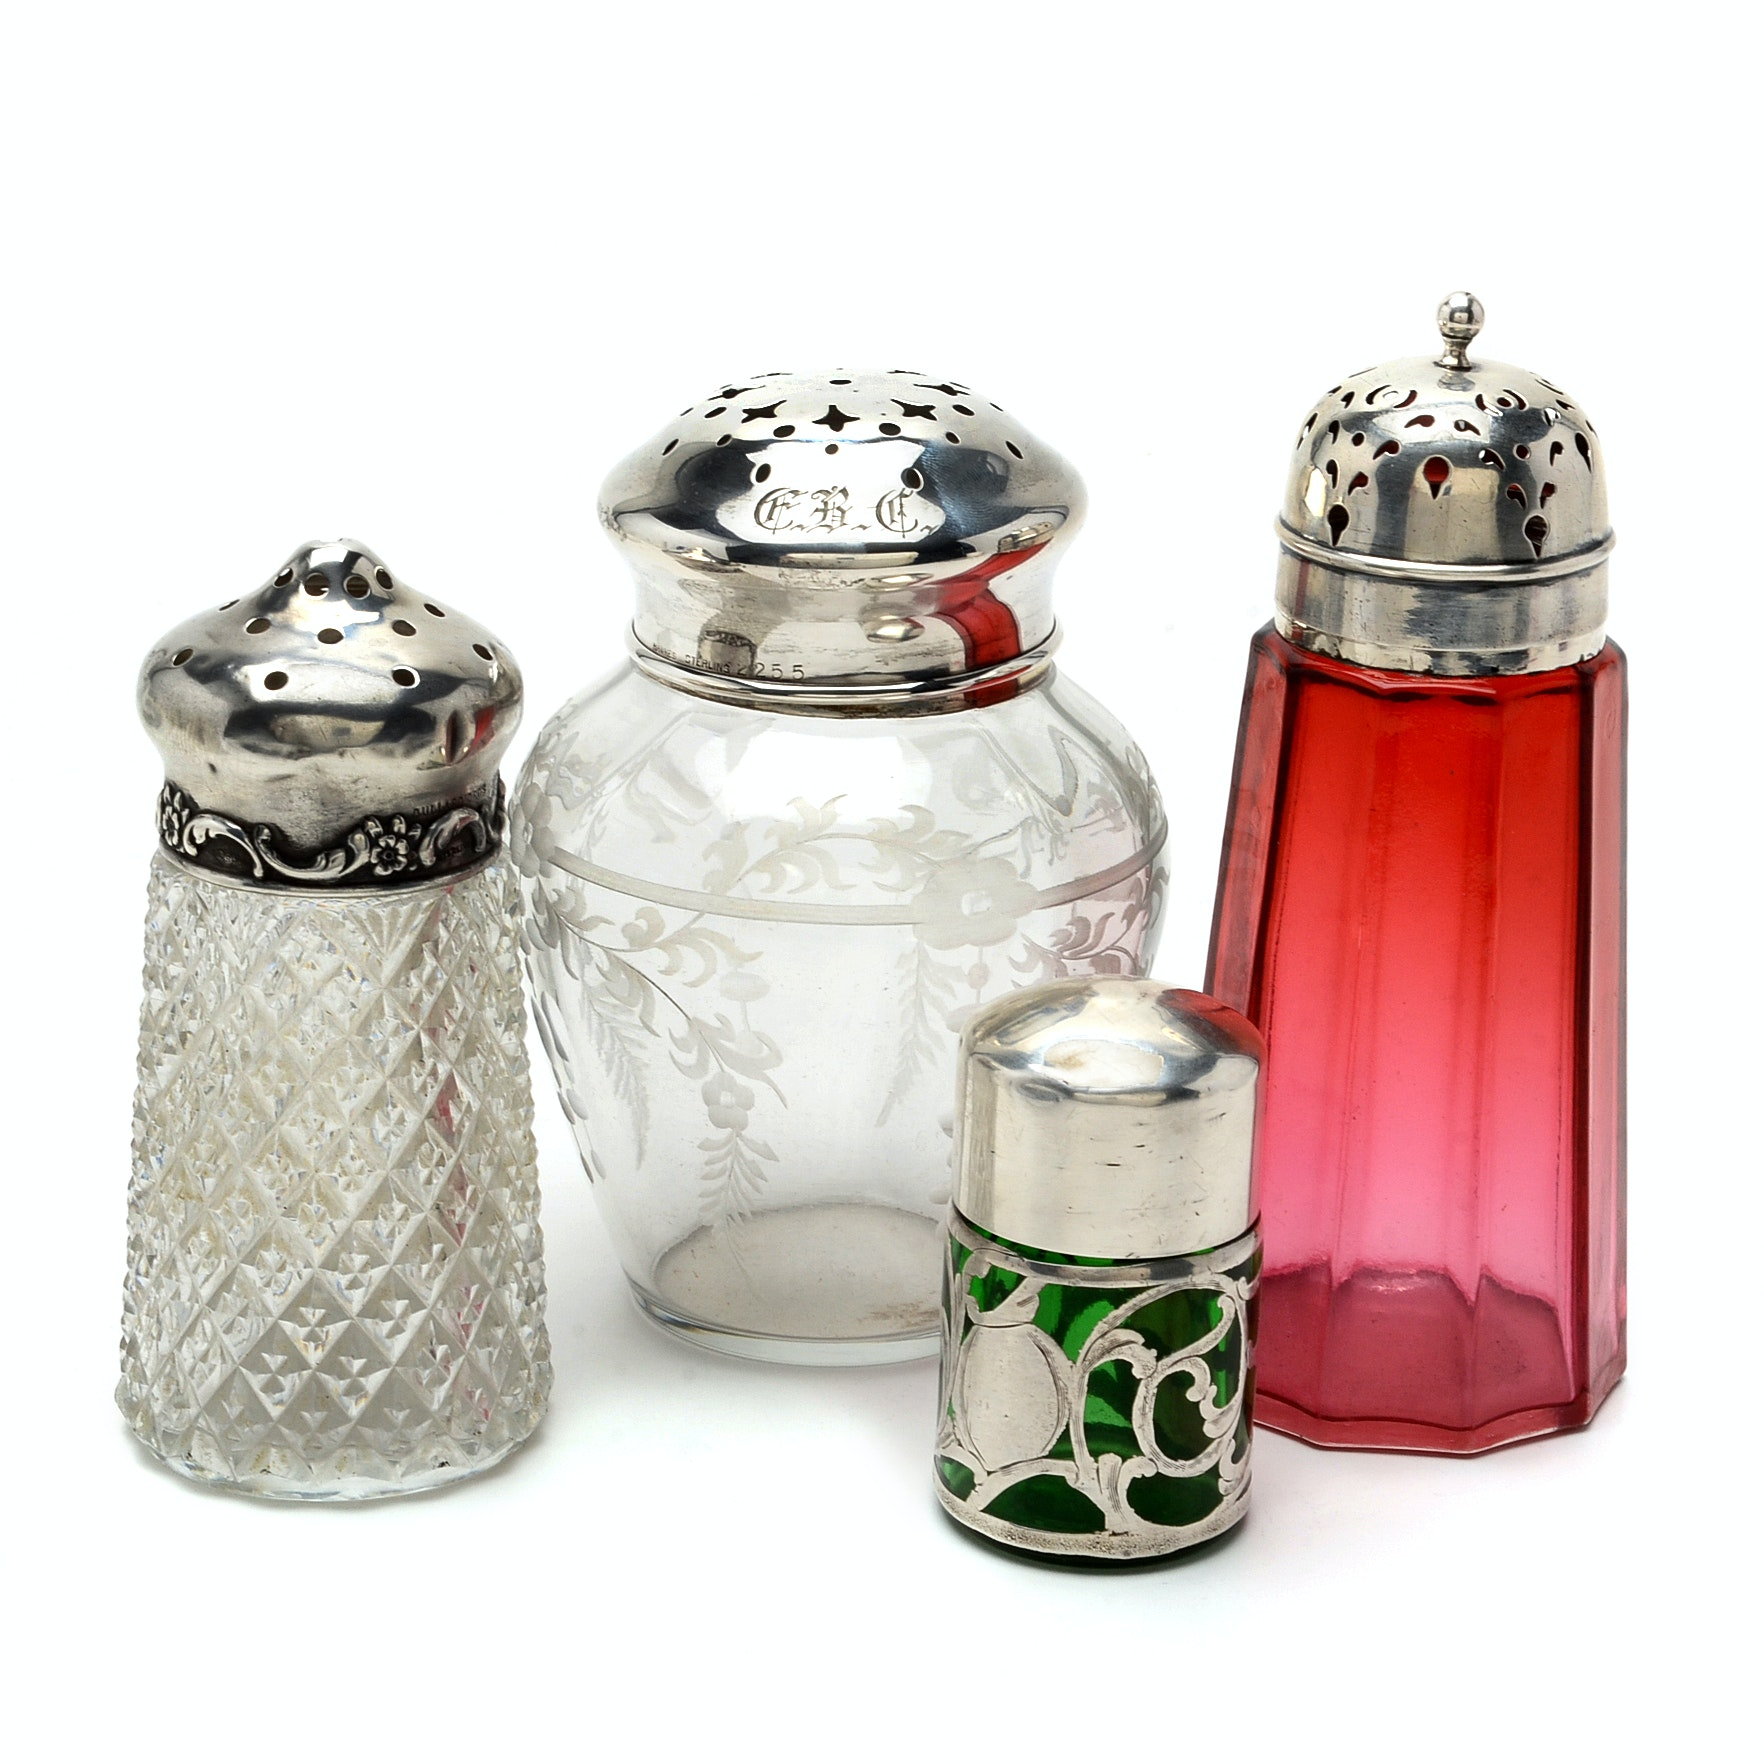 Three Vintage Shakers and an Ink Bottle with Sterling Overlay